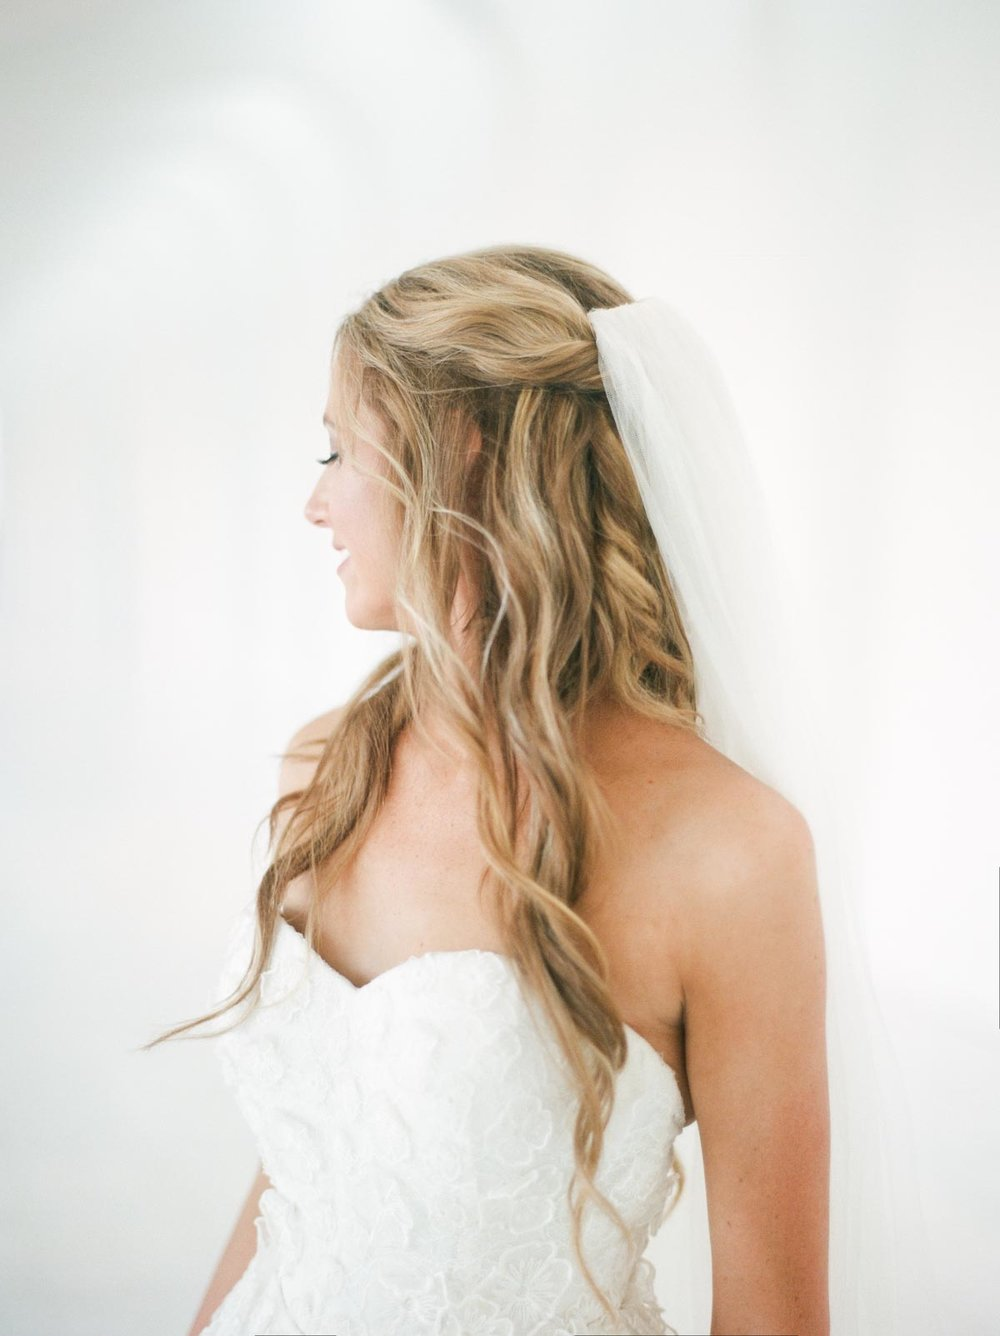 kateweinsteinphoto_milwaukee_art_museum_wedding-148.jpg